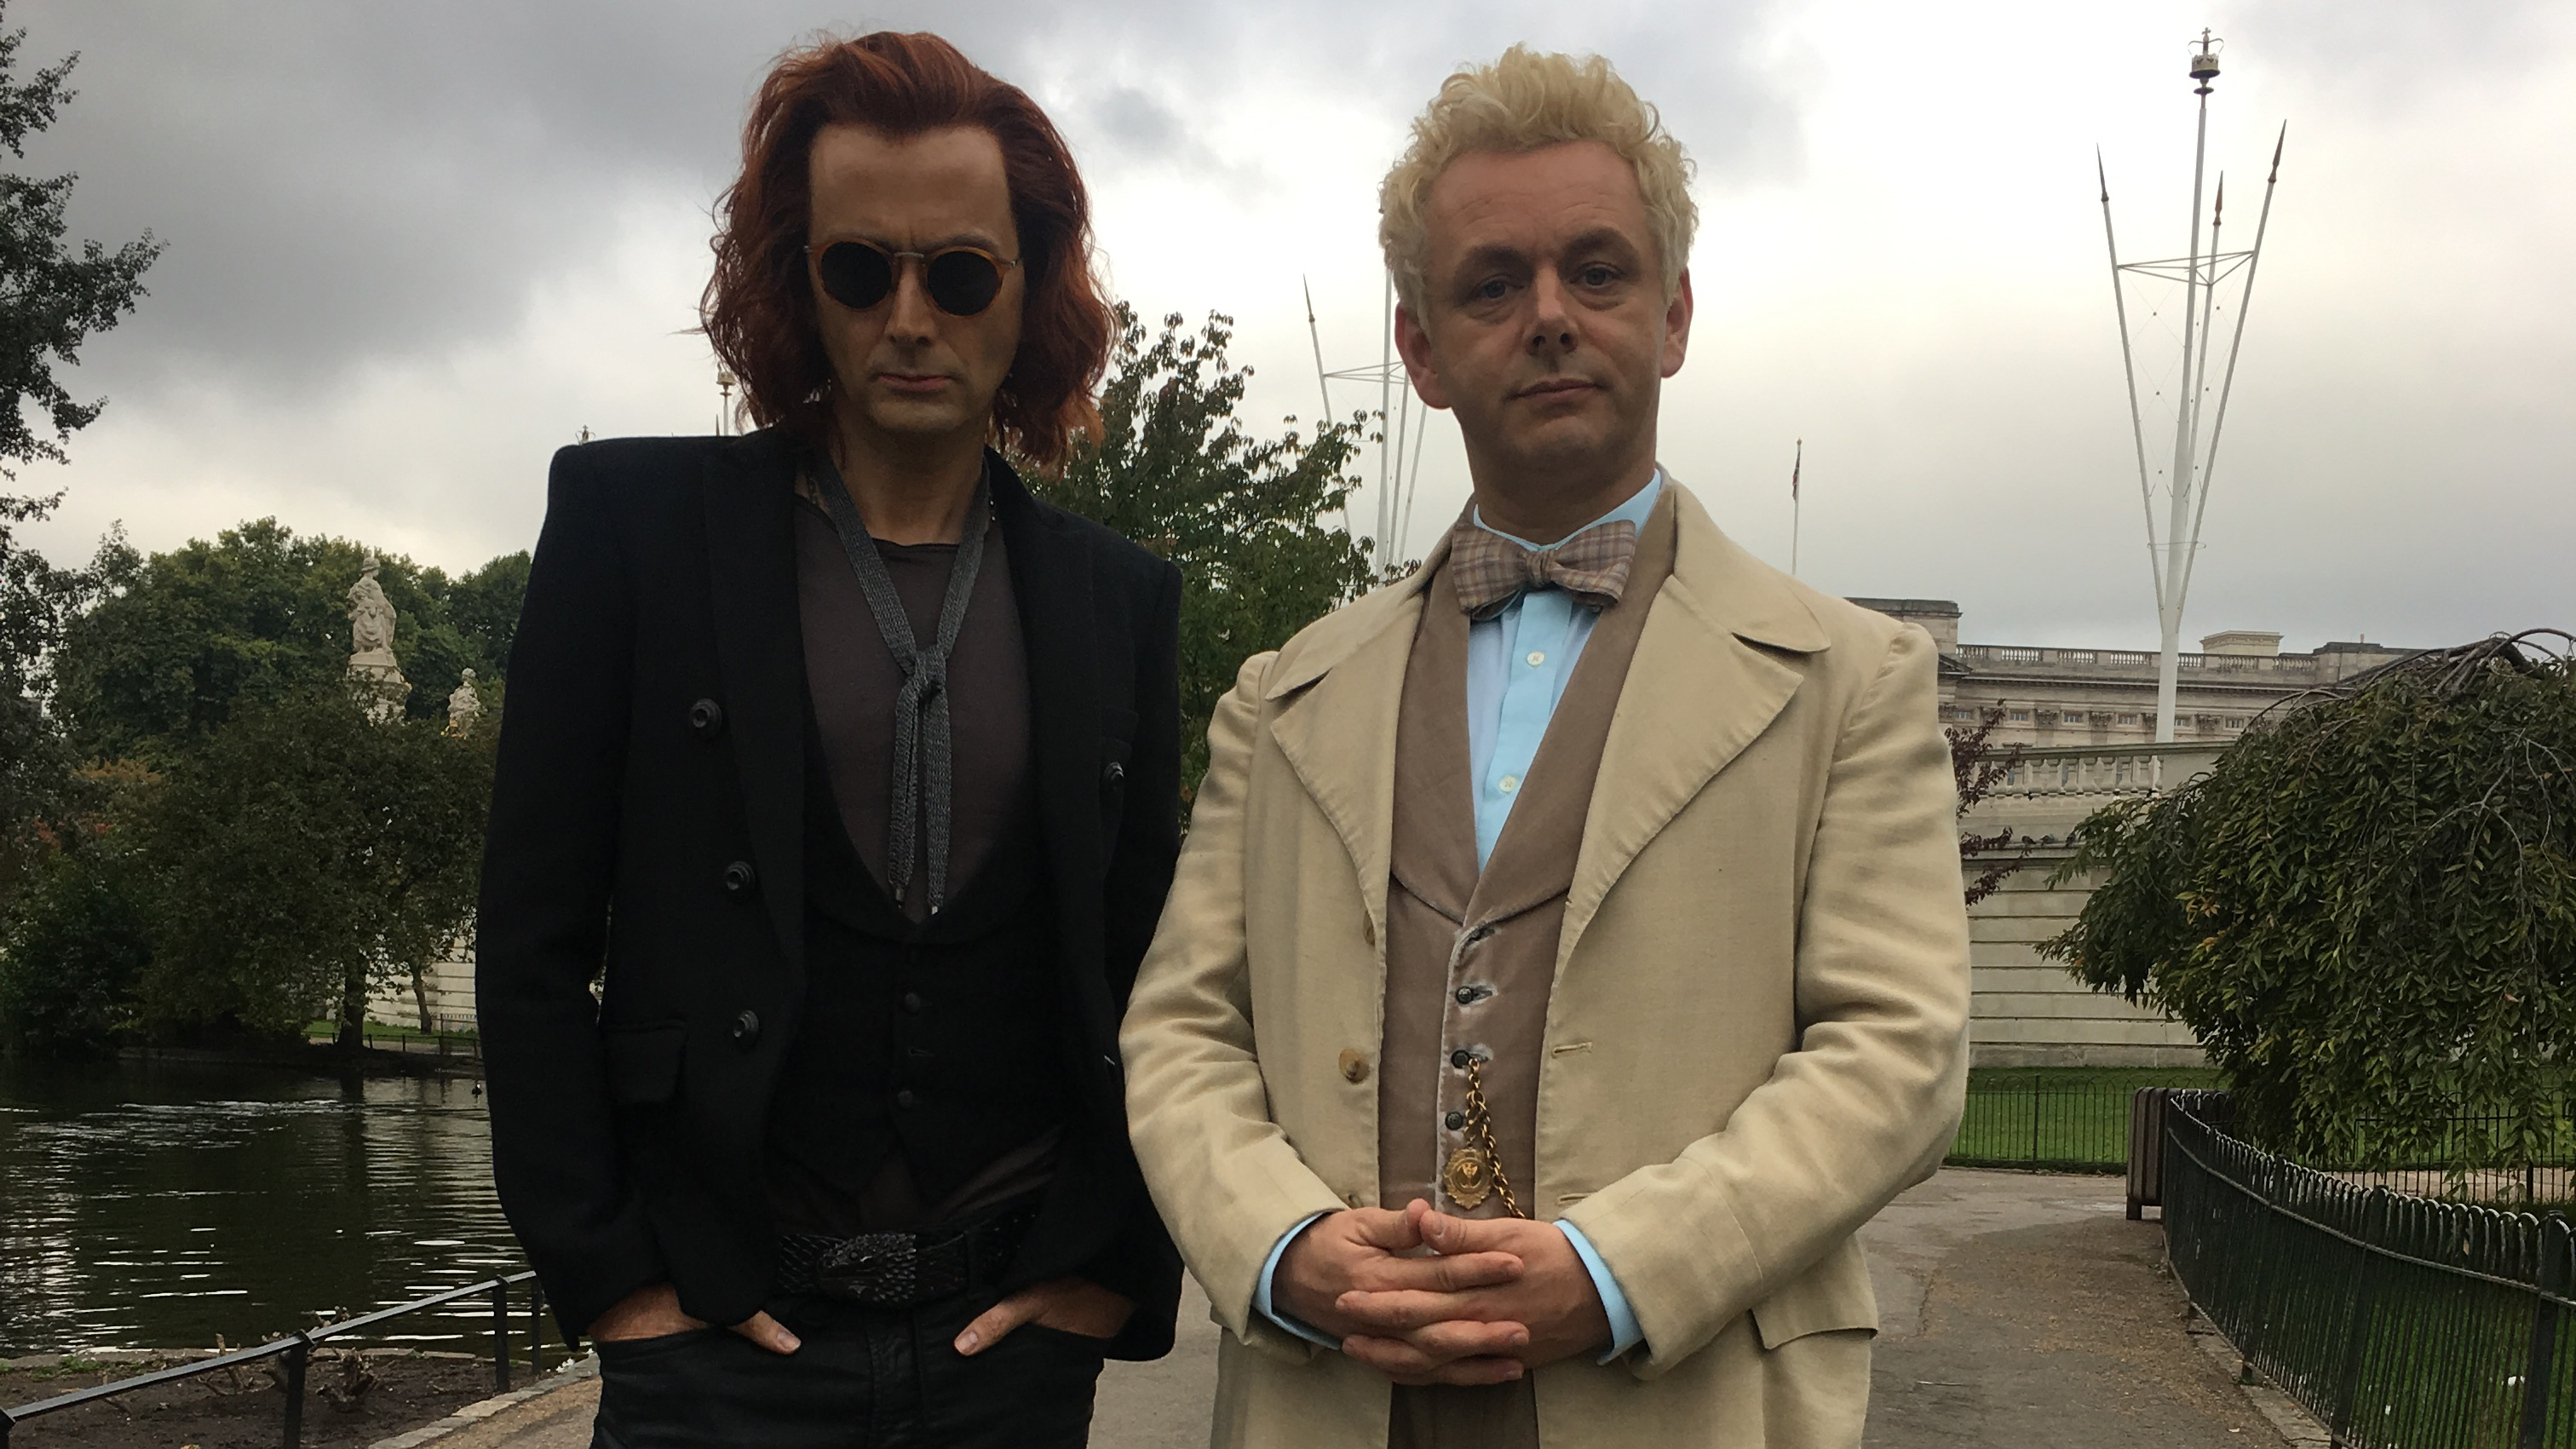 A behind-the-scenes look at Good Omens stars David Tennant and Michael Sheen